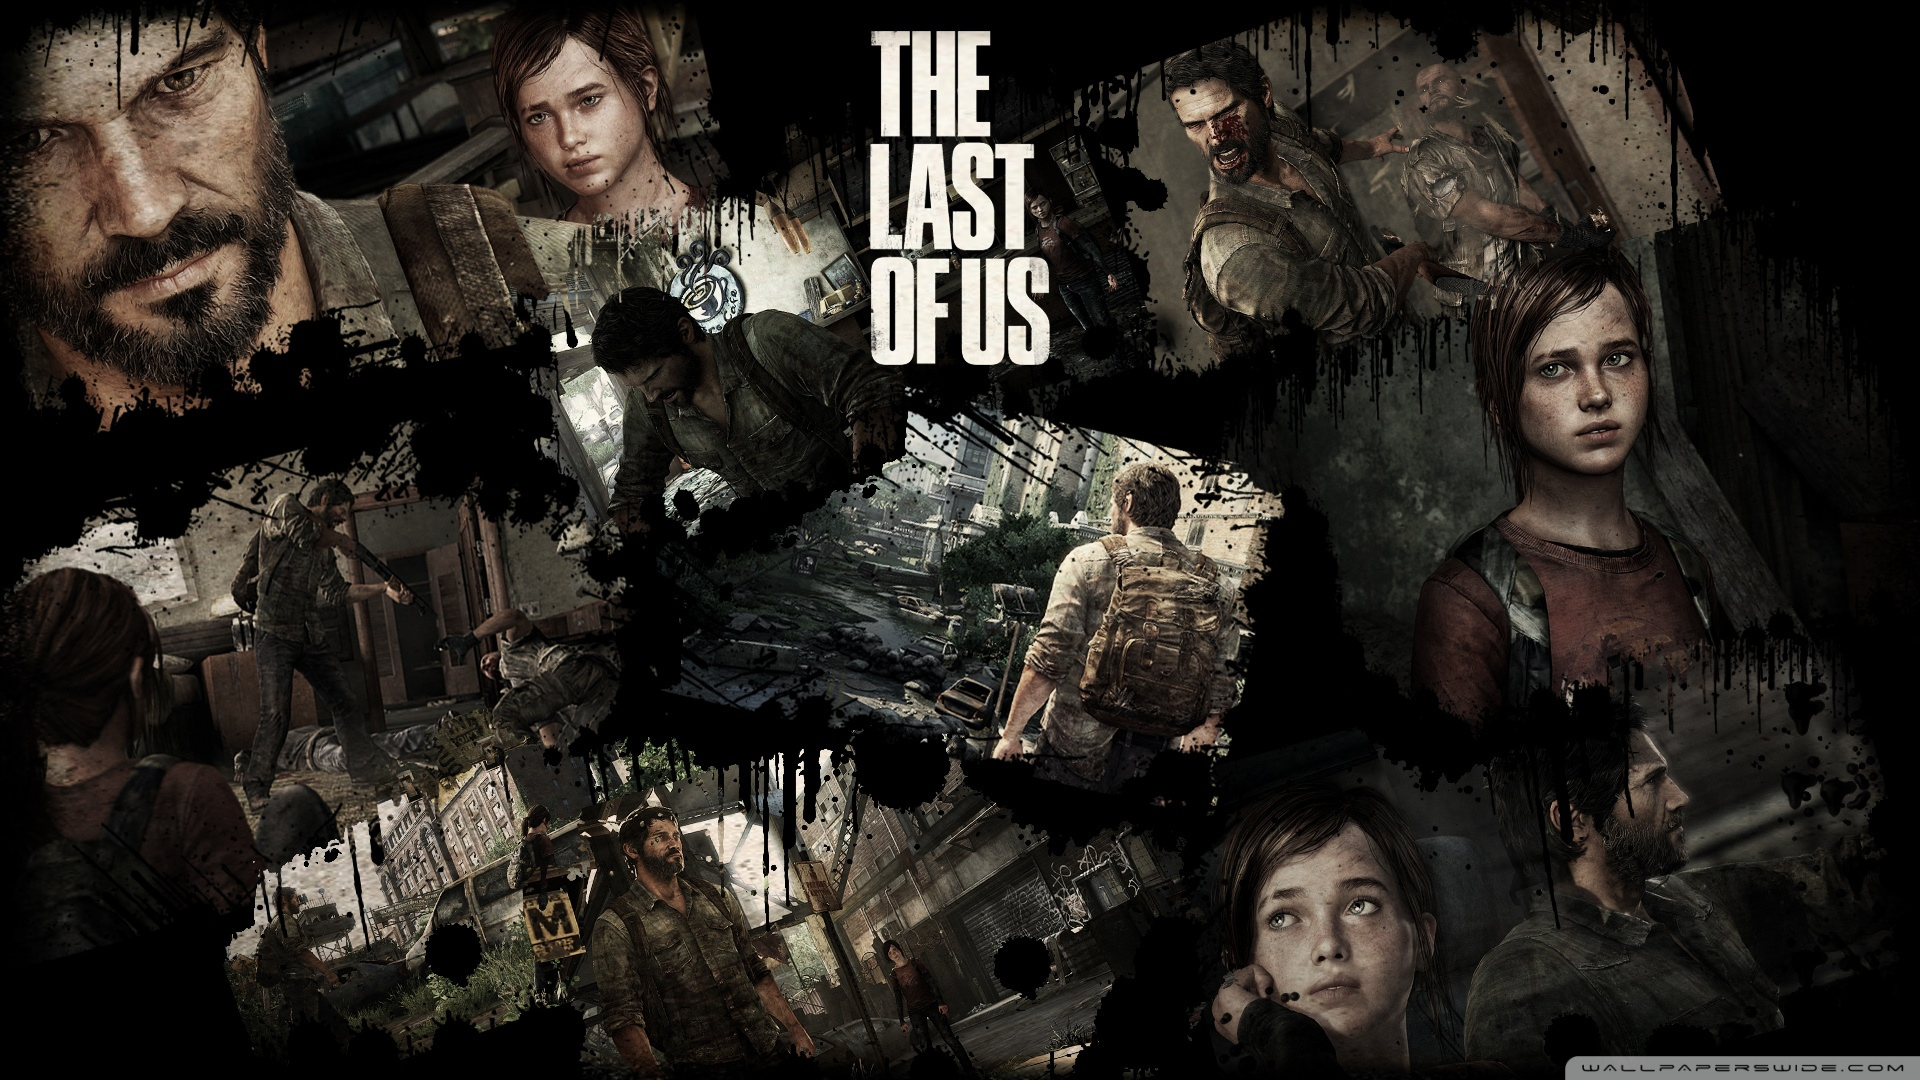 File The Last Of Us Wallpapers CCM9C2Ejpg   4USkY 1920x1080